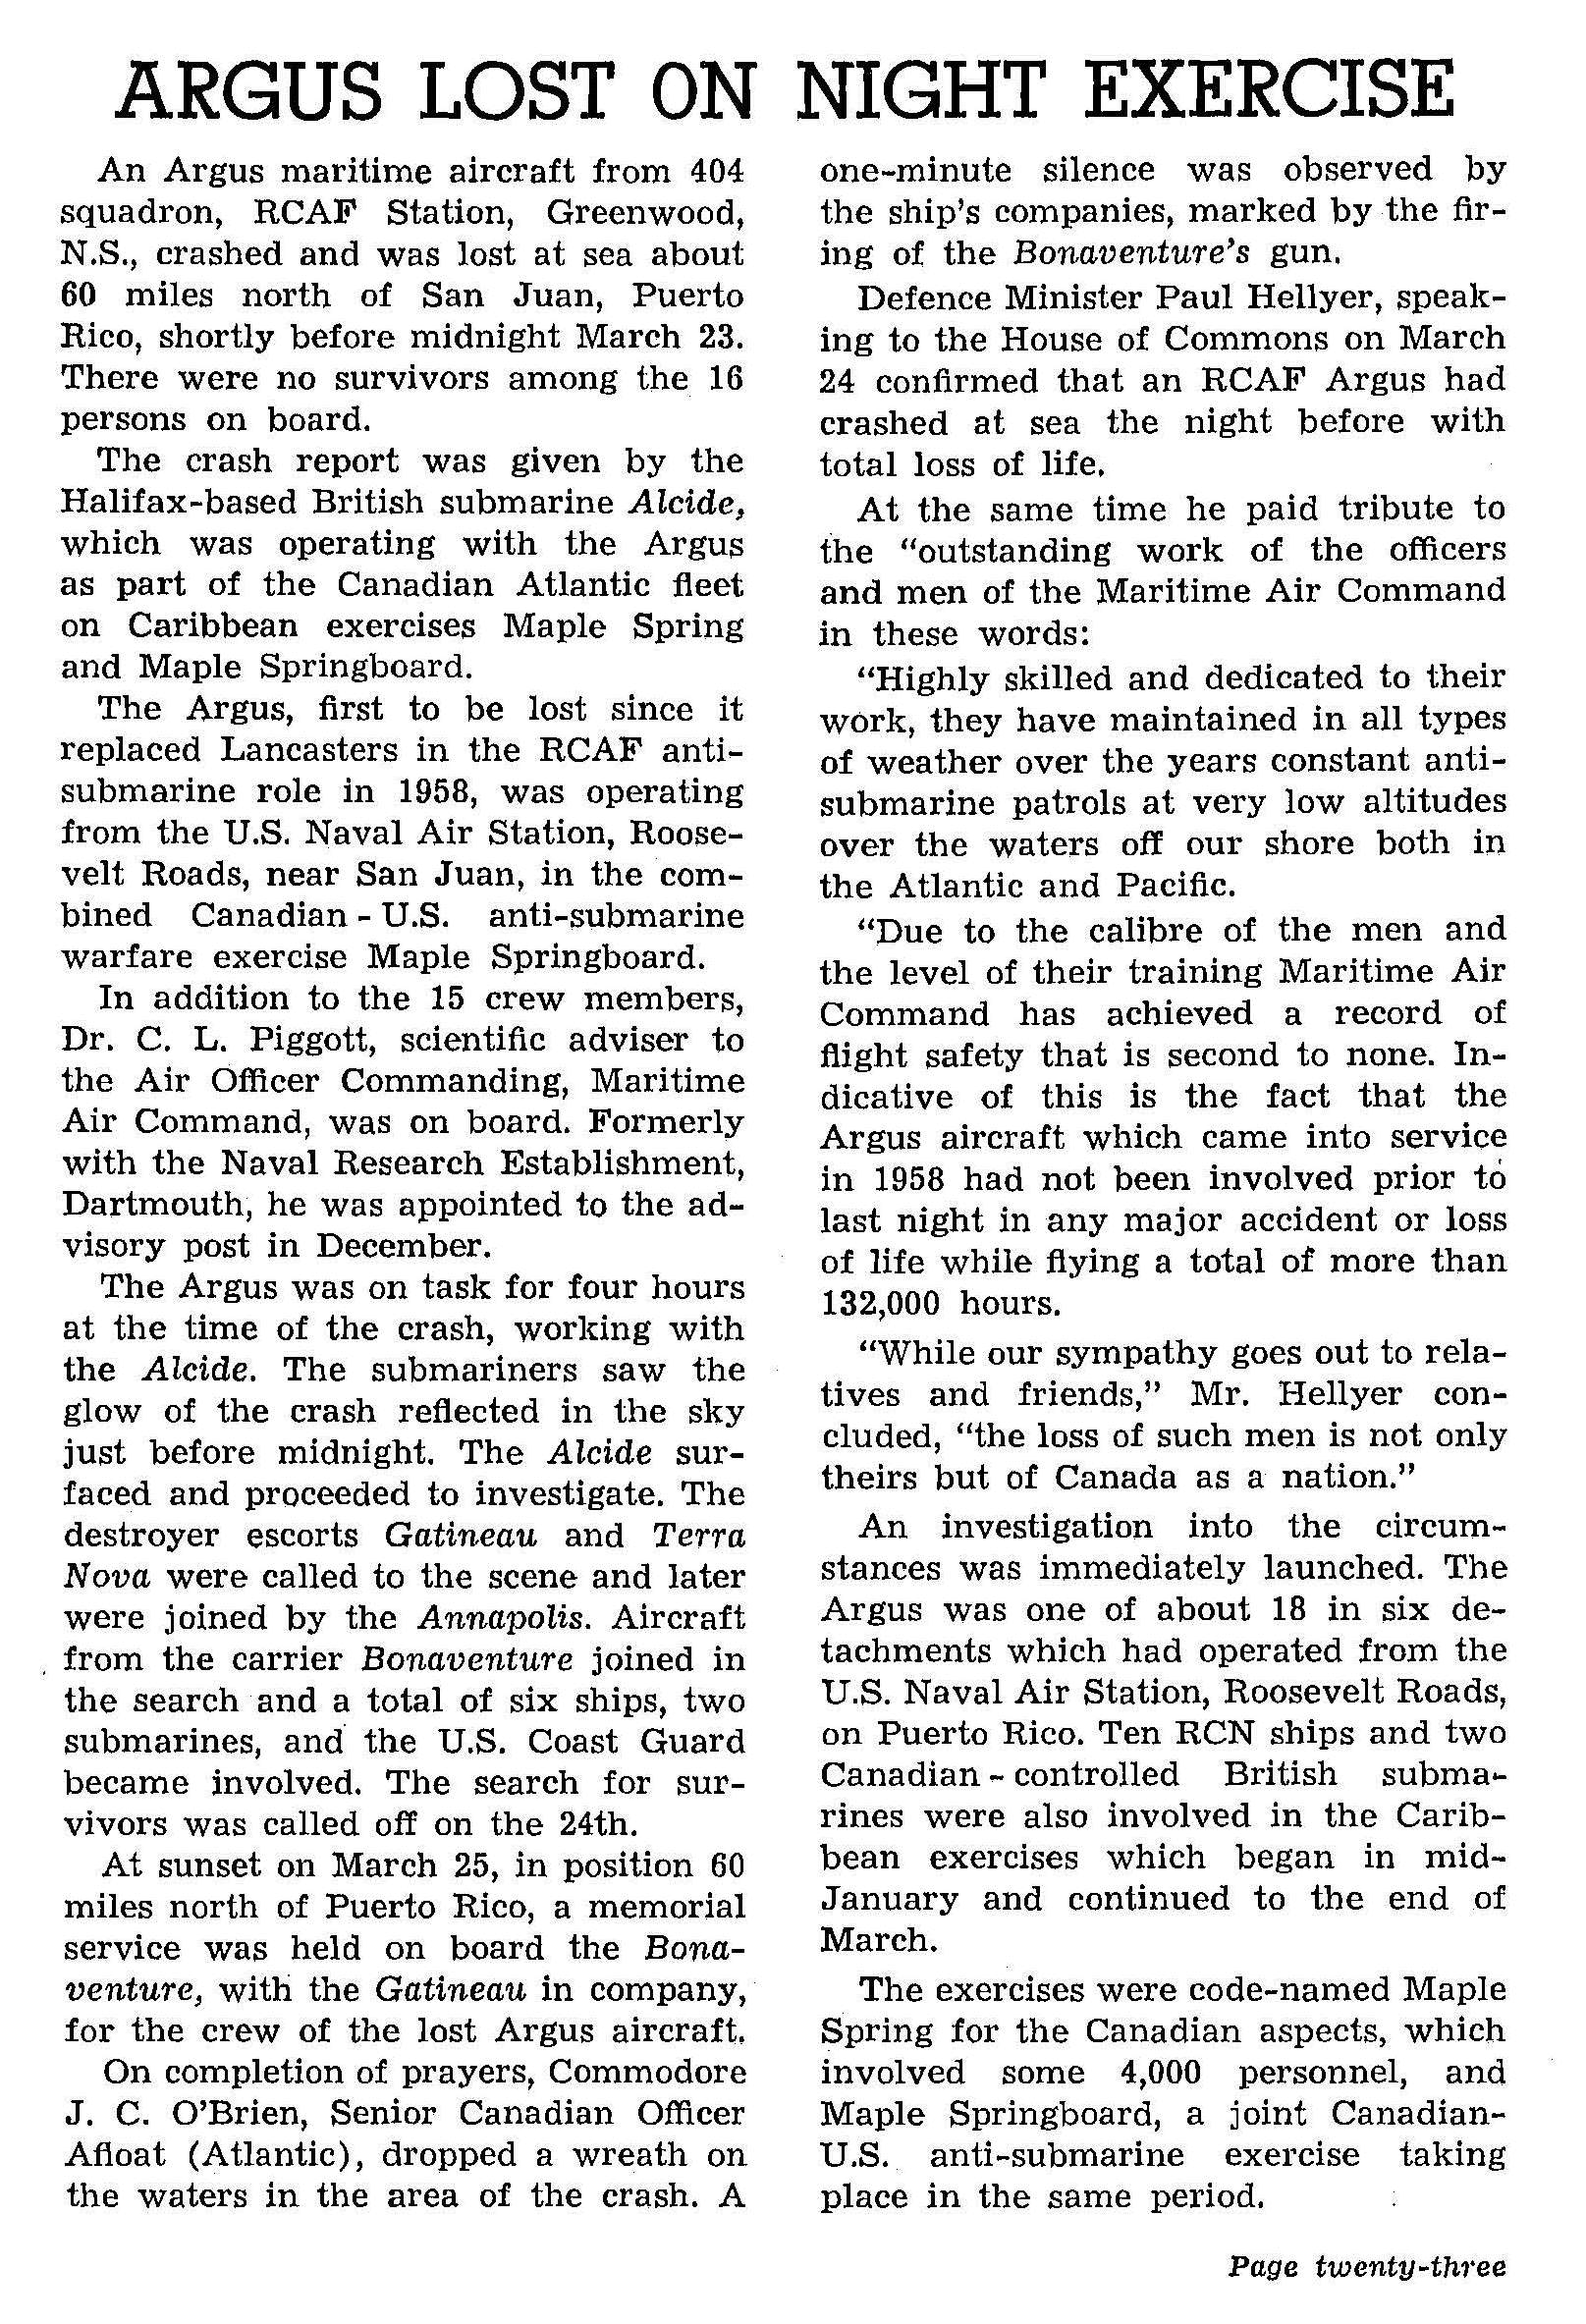 Document– This news report about the loss of Argus aircraft #20727 on May 23, 1965, appeared at page 23 of the March-April 1965 issue of Crowsnest, the Royal Canadian Navy's magazine.  (Submitted by Navy League Cadet Corps CHAMBLY, Barrie, Ontario.)